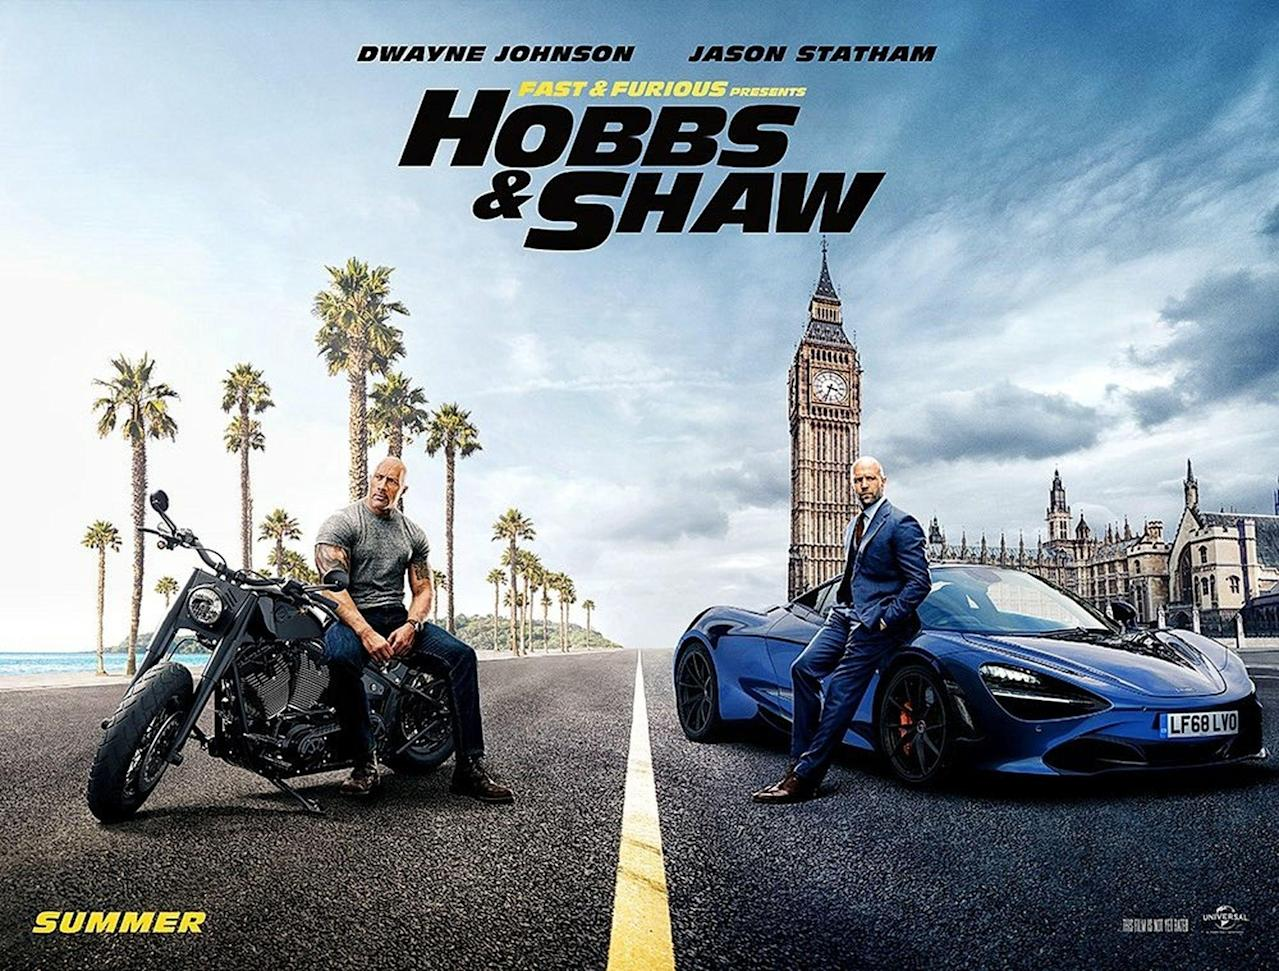 Fast and Furious Presents: Hobbs & Shaw' continues to top